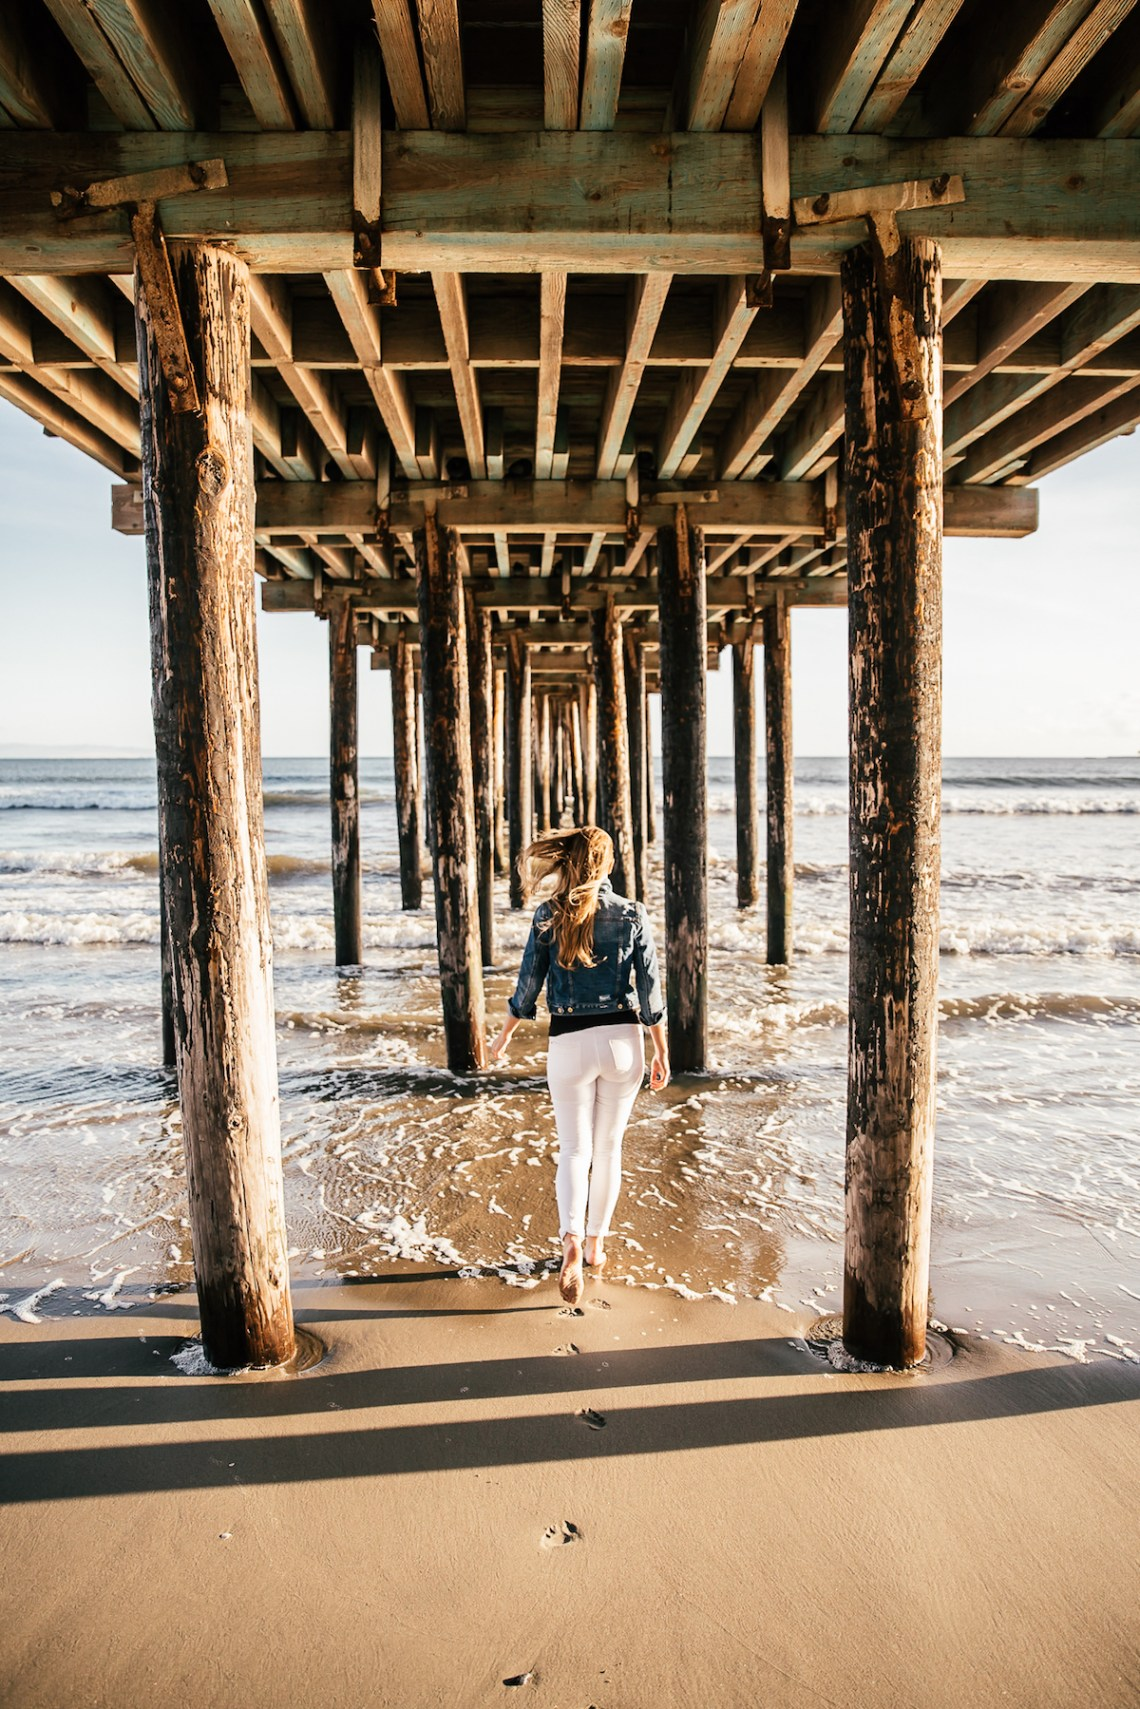 10 Things You Must Do In Avila Beach, California